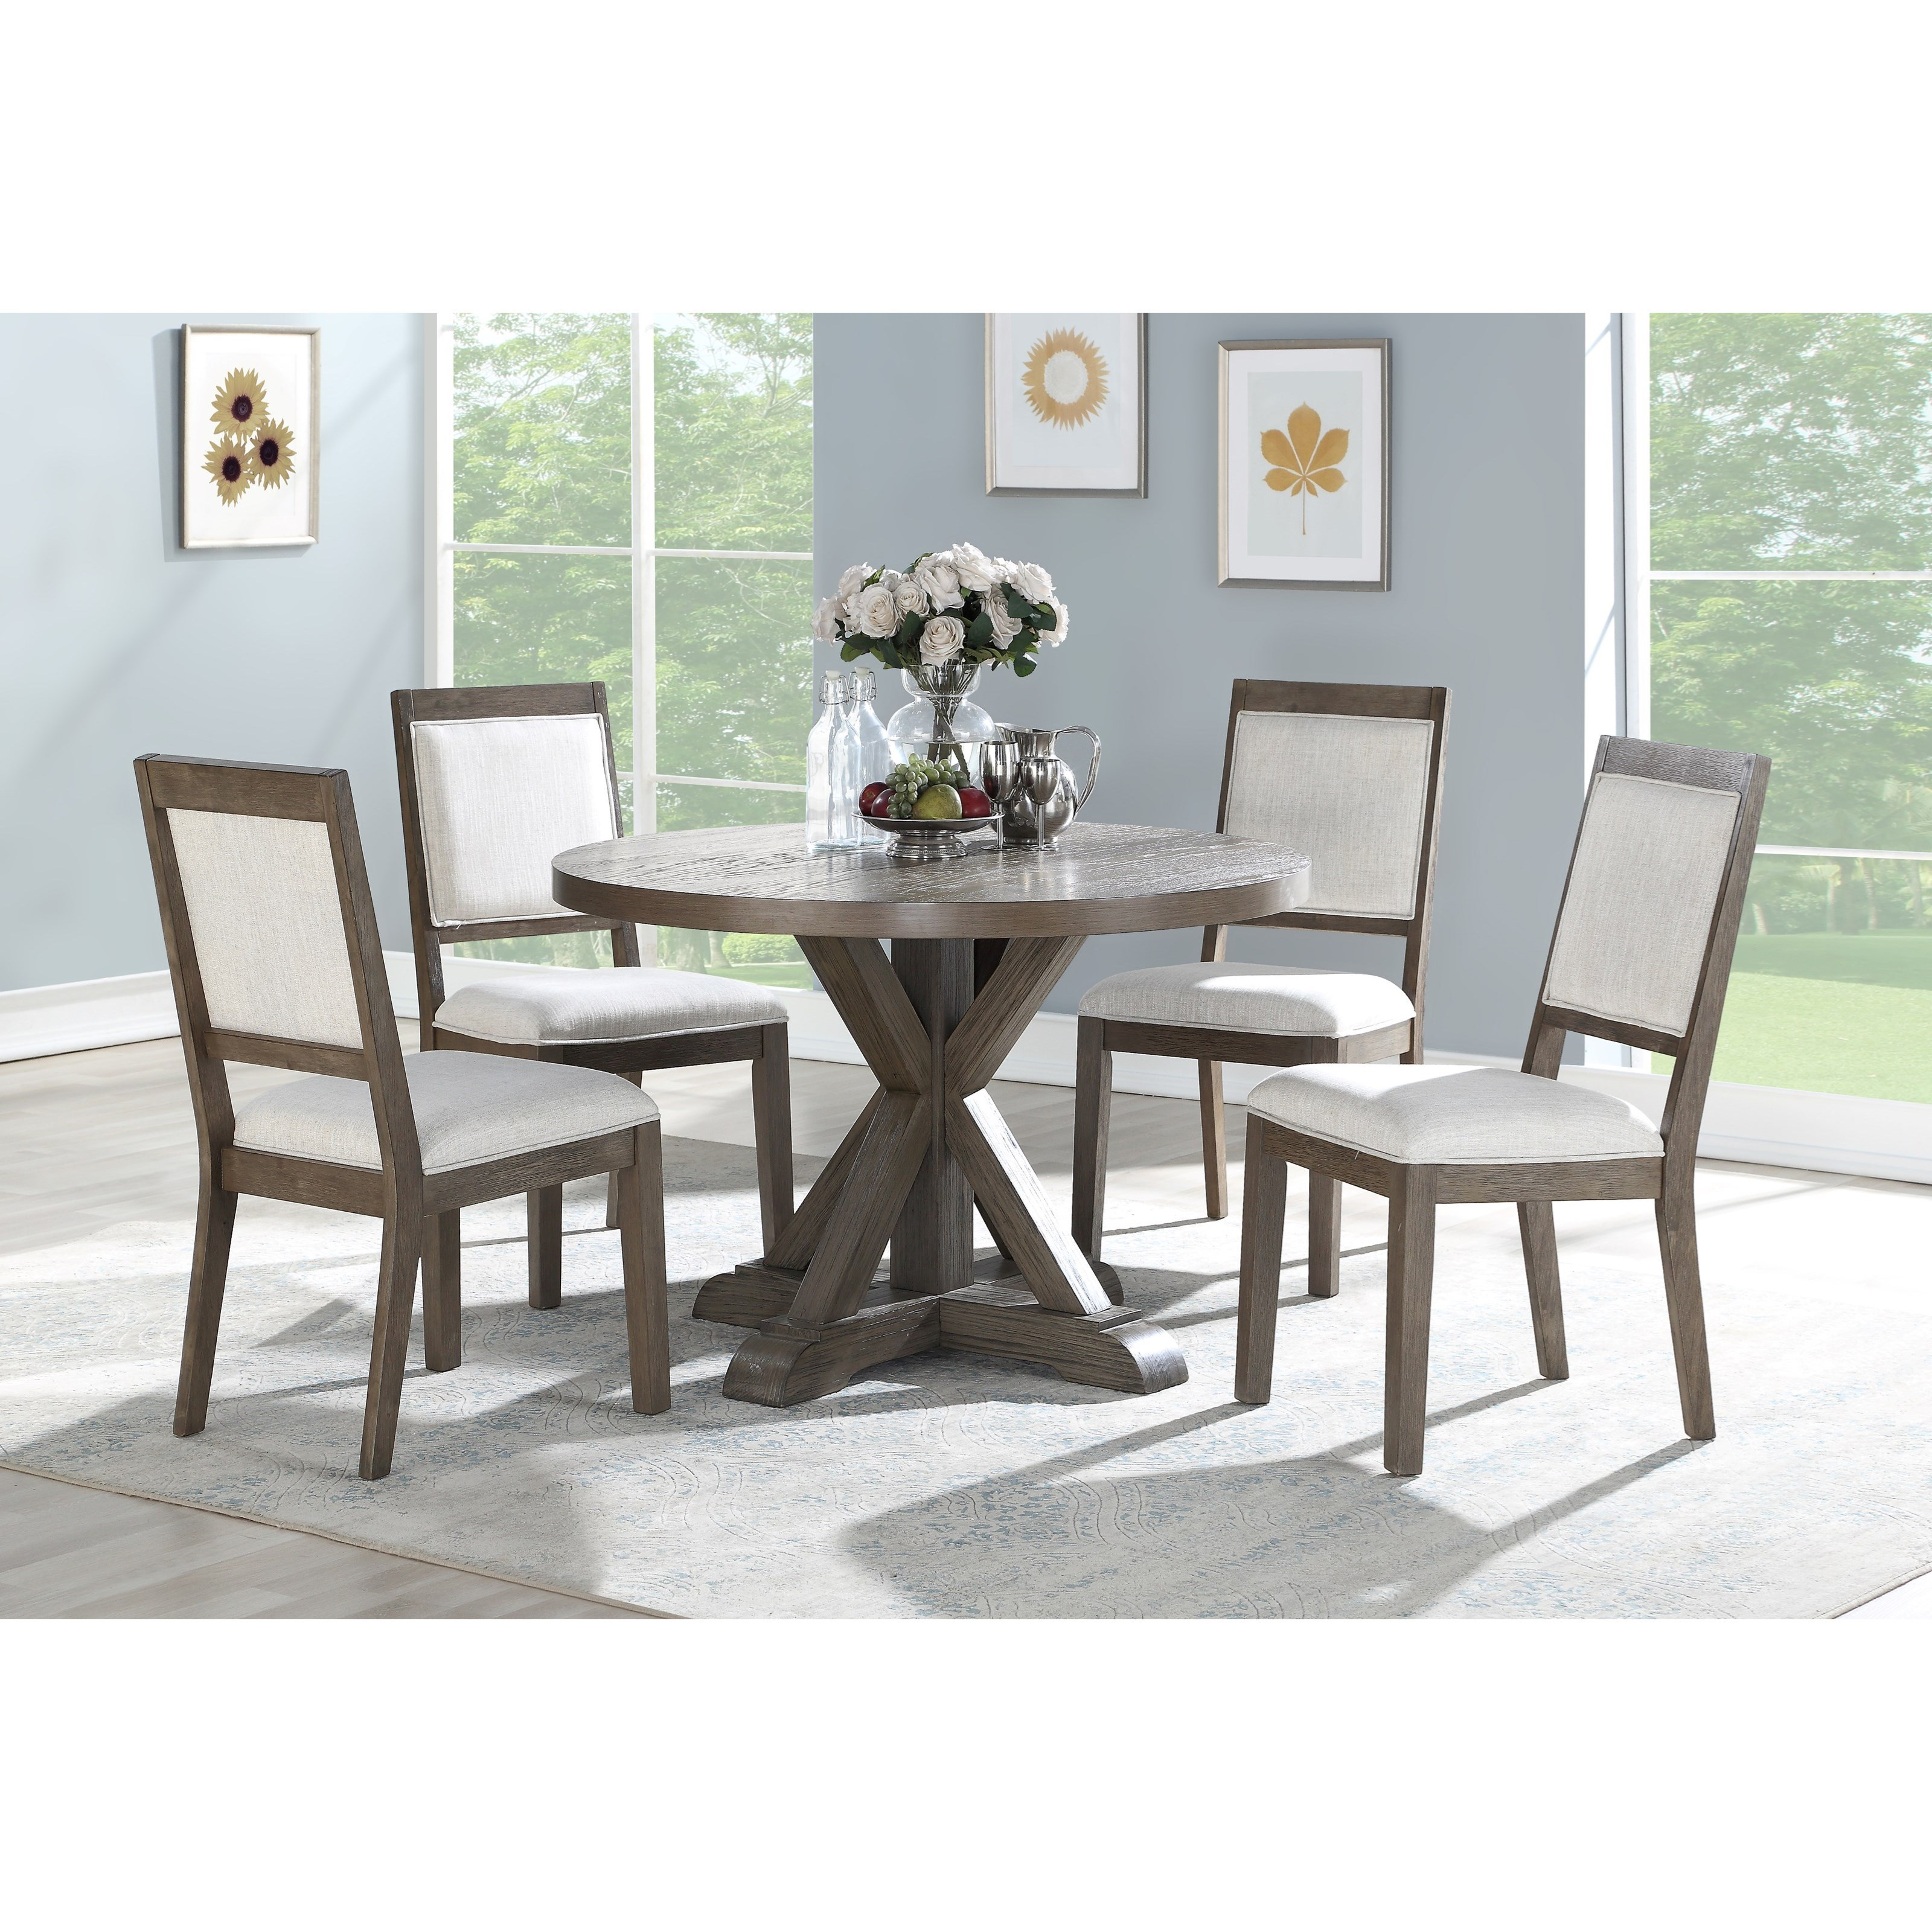 Molly 5 Piece Table and Chair Set by Steve Silver at Northeast Factory Direct